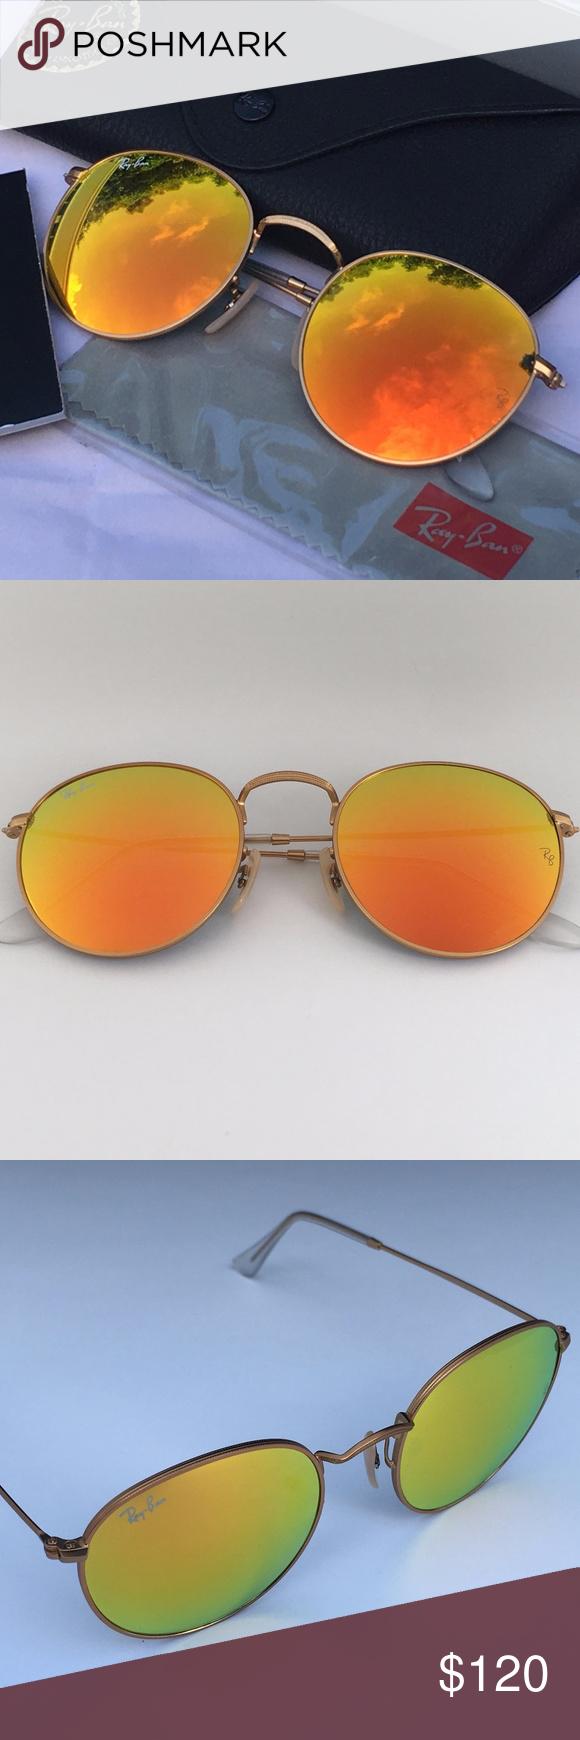 26cd6ef154e RAY-BAN ROUND SHAPE SUNGLASSES Orange Mirror Gold 100% AUTHENTIC  amp  BRAND